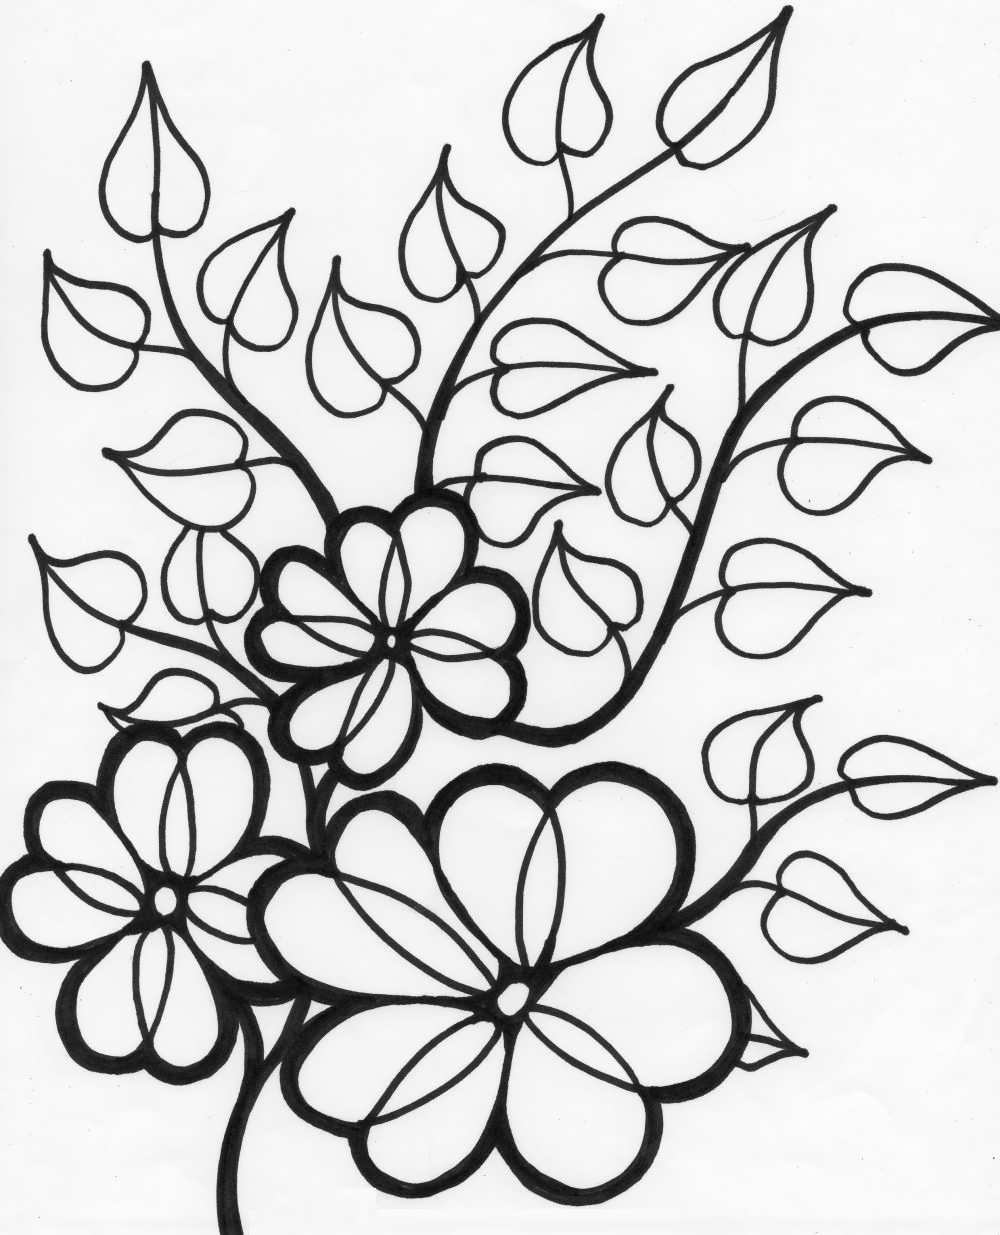 picture of flowers to print free printable flowers pdf coloring pages 10 to of flowers picture print